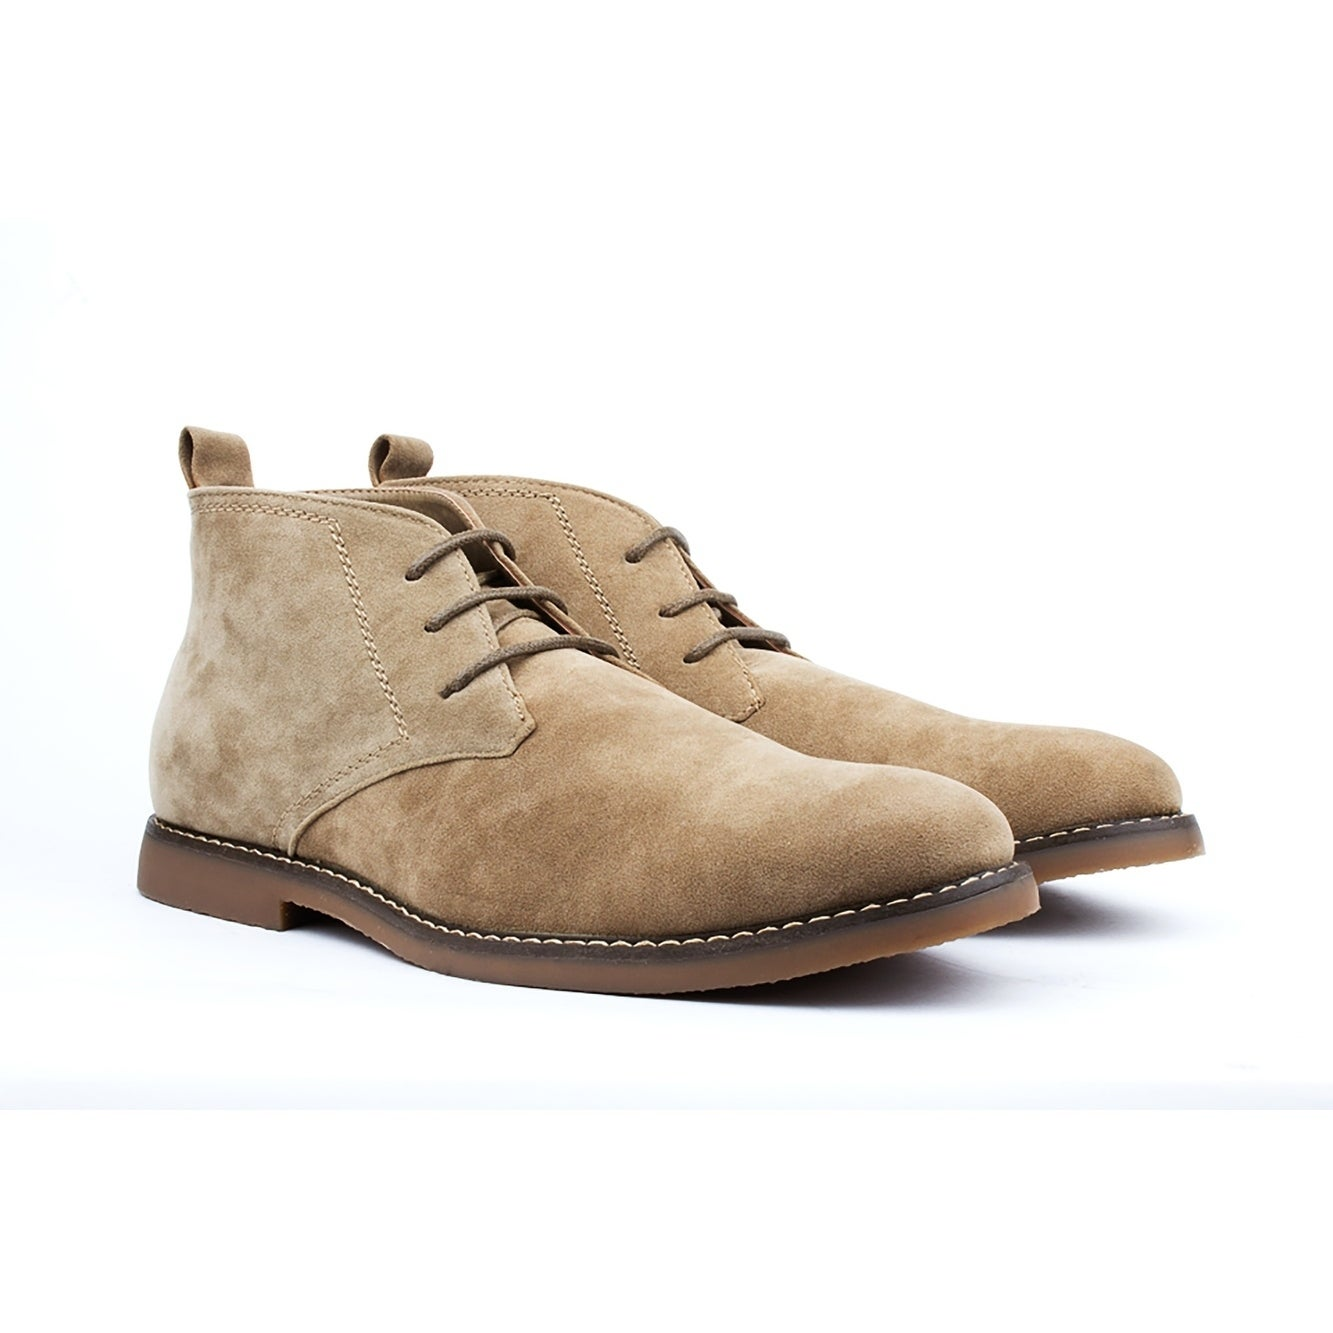 8a2f1ef9739 Shop Miko Lotti Men s Desert Boot Chukkas - On Sale - Free Shipping Today -  Overstock - 18062740